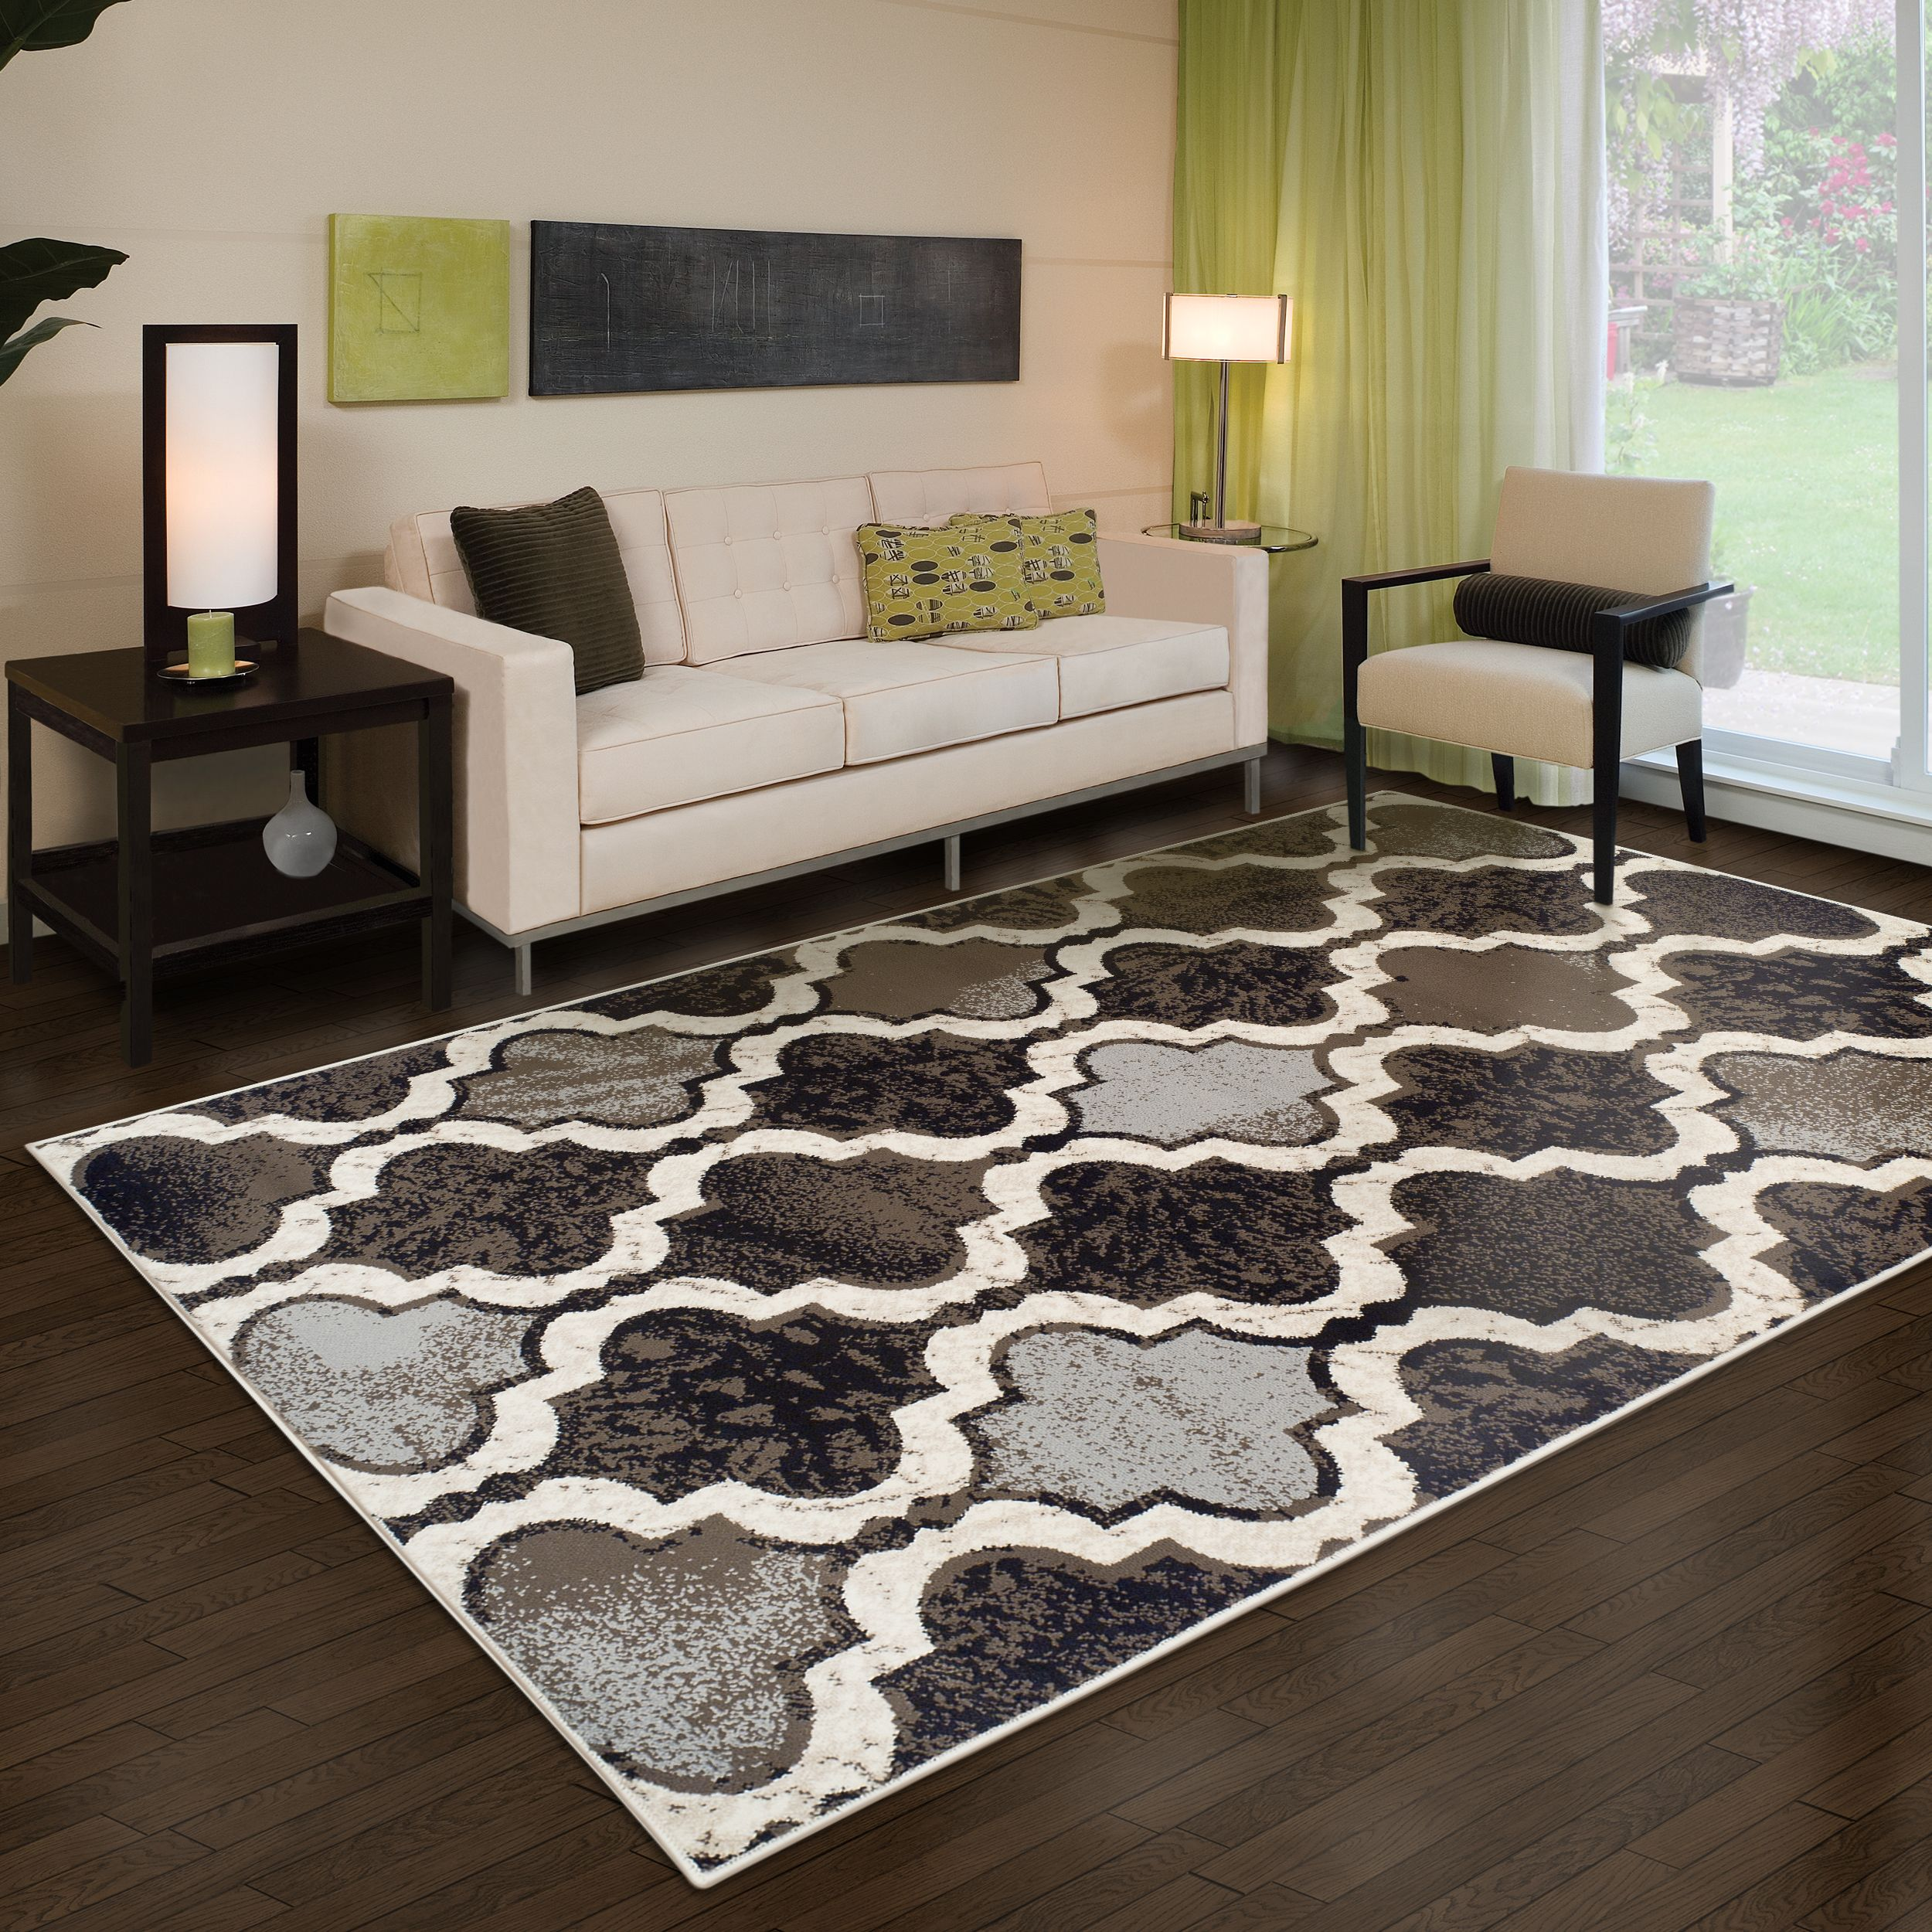 Click here to buy Superior Modern Viking Collection Indoor Area Rug by Superior.